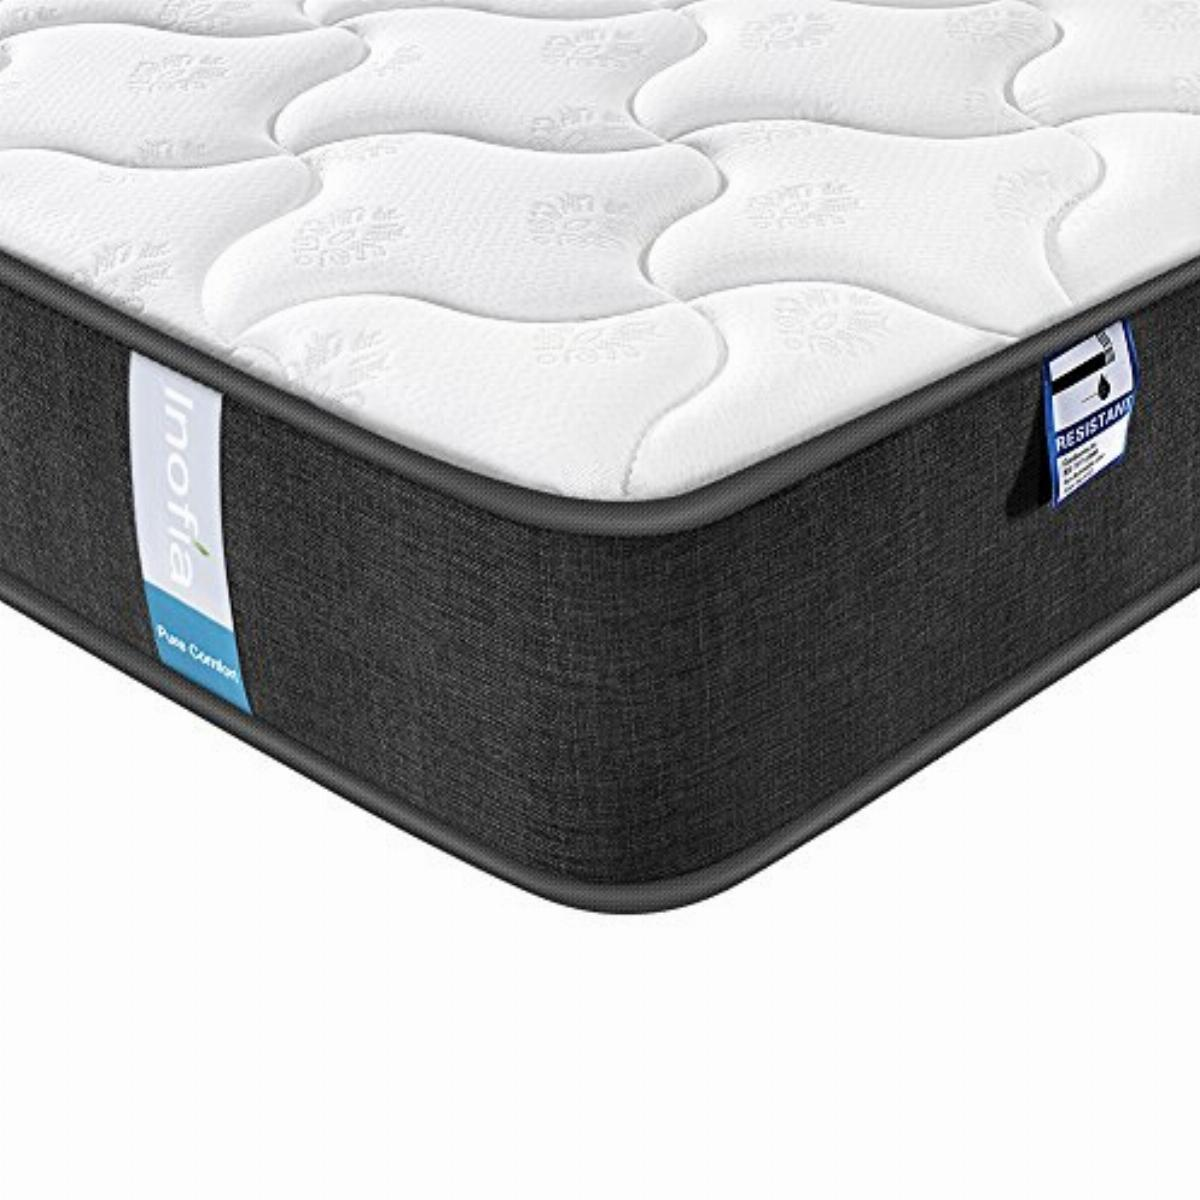 Inofia Sleep 3FT Single Mattress,25cm Gel Infused Memory Foam Mattress,Supportive and Pressure Relief with Breathable Soft Fabric Cover,Medium Firm Feel,CertiPUR-US,100 Night Trial